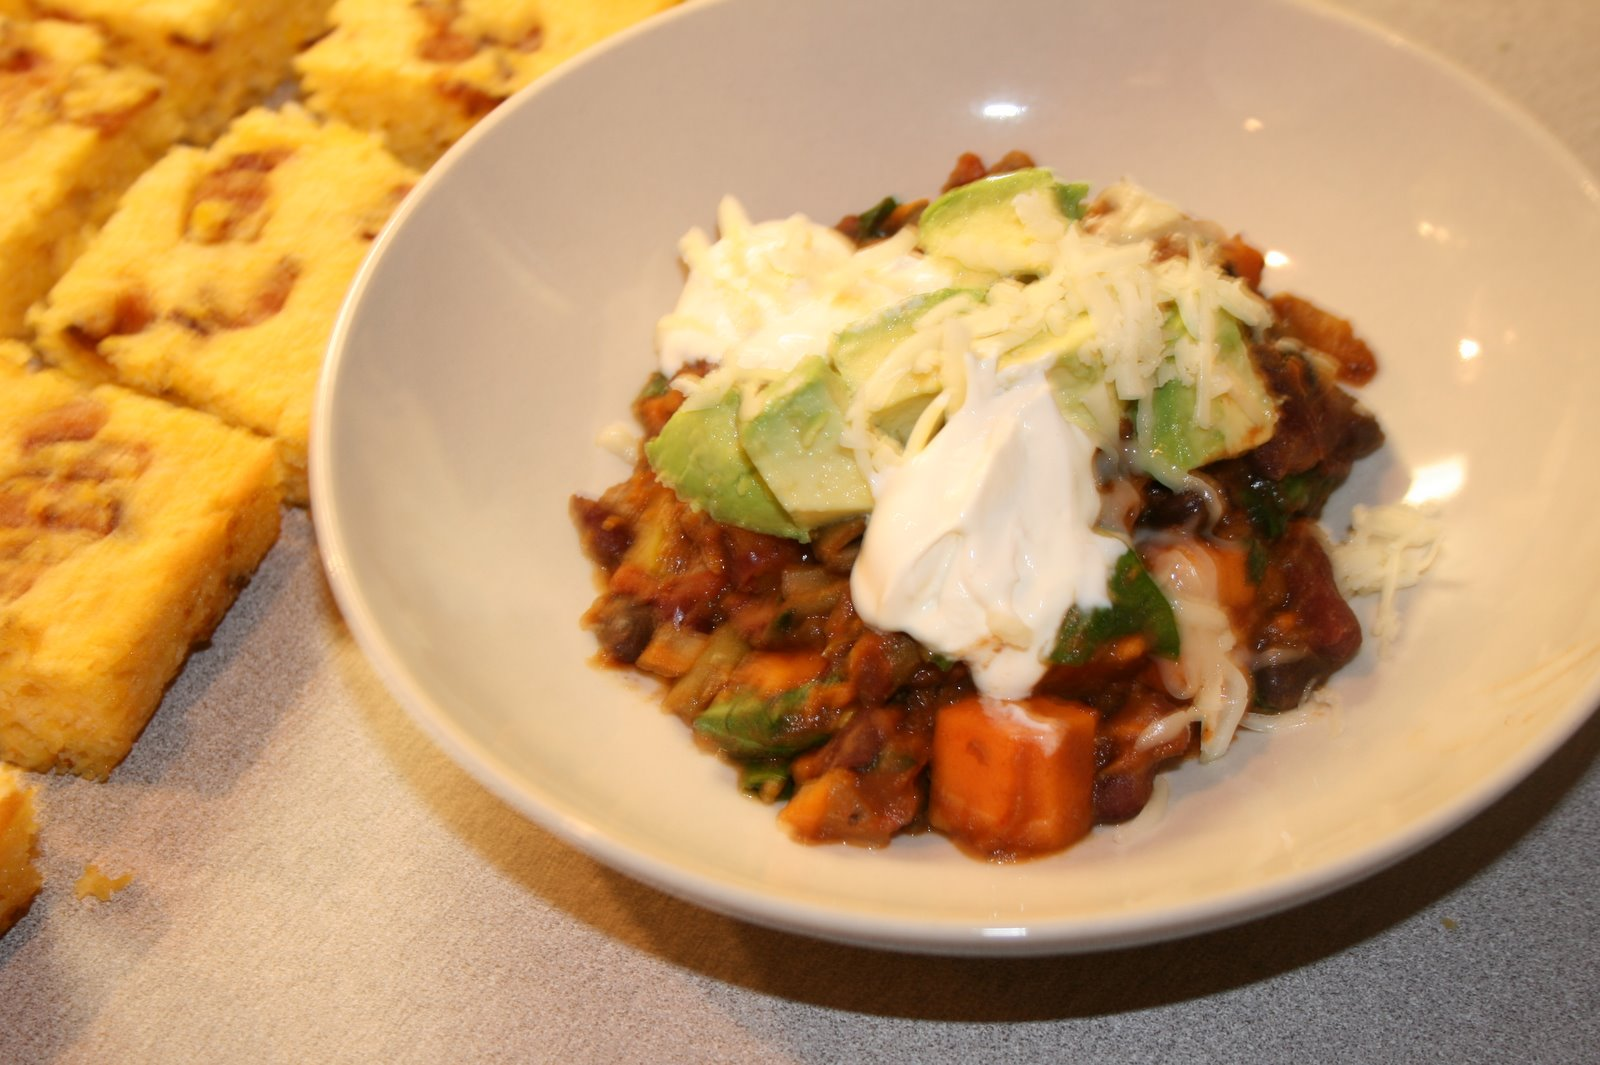 ... by that I mean chili. But vegetarian chili for the delicate among us